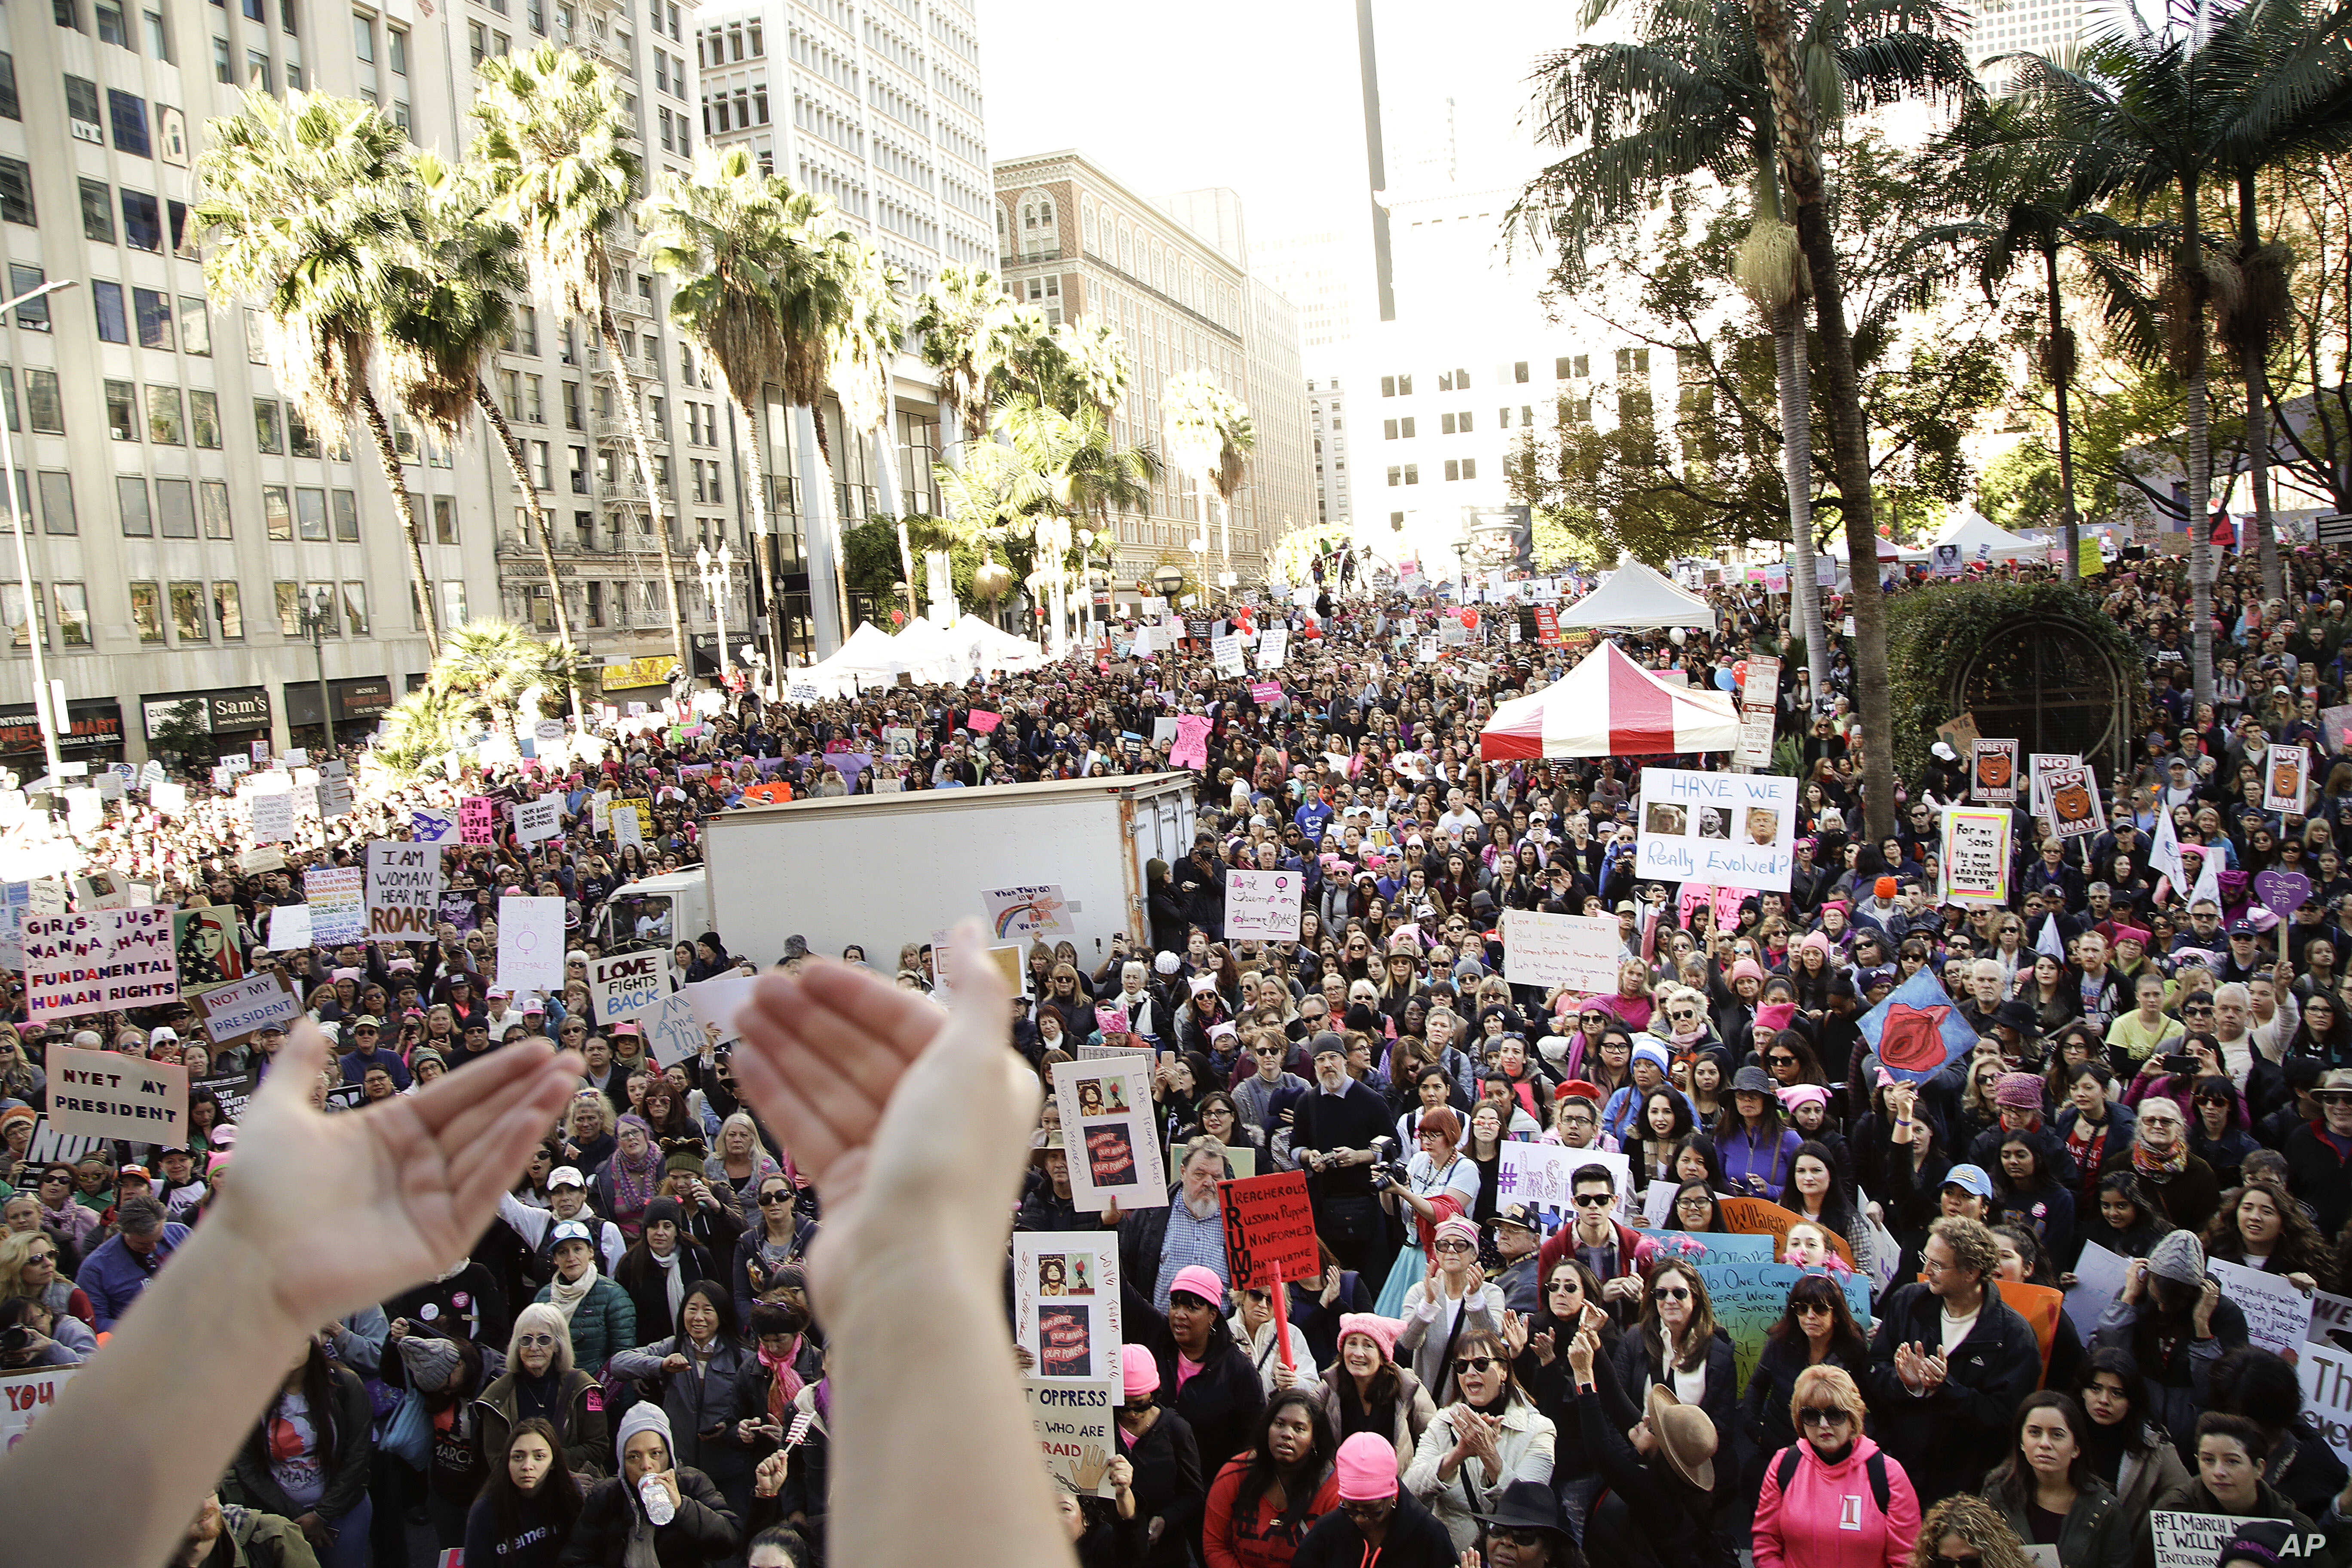 Protesters listen to a speaker as they gather for the Women's March against President Donald Trump, Jan. 21, 2017, in Los Angeles.